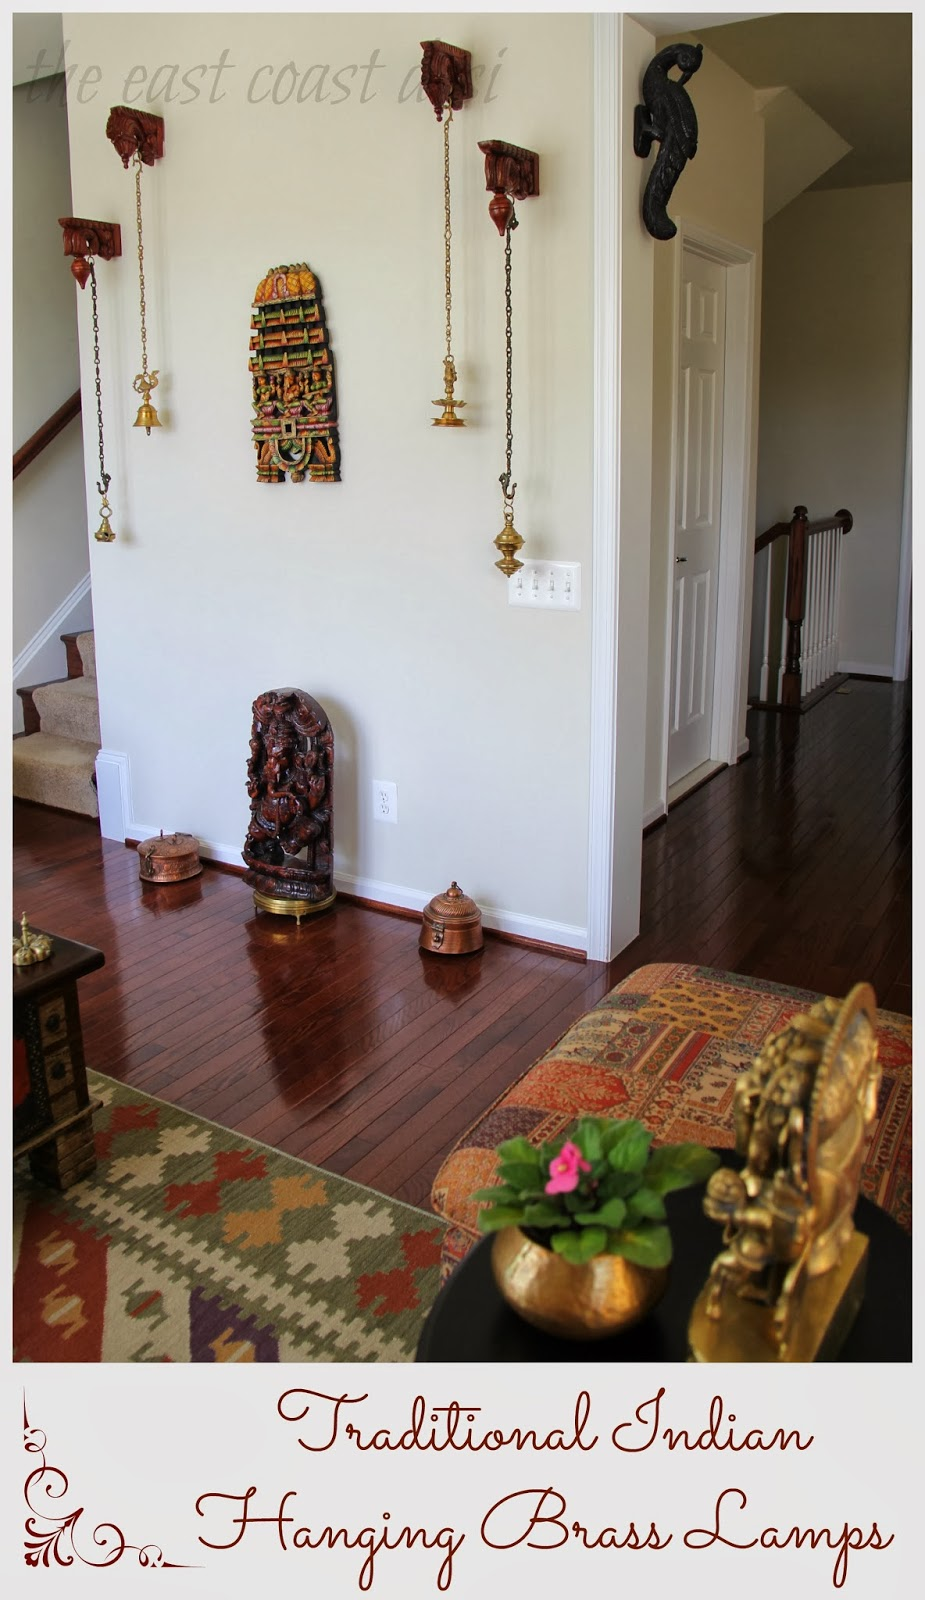 The east coast desi my living room a reflection of india for Home decoration design